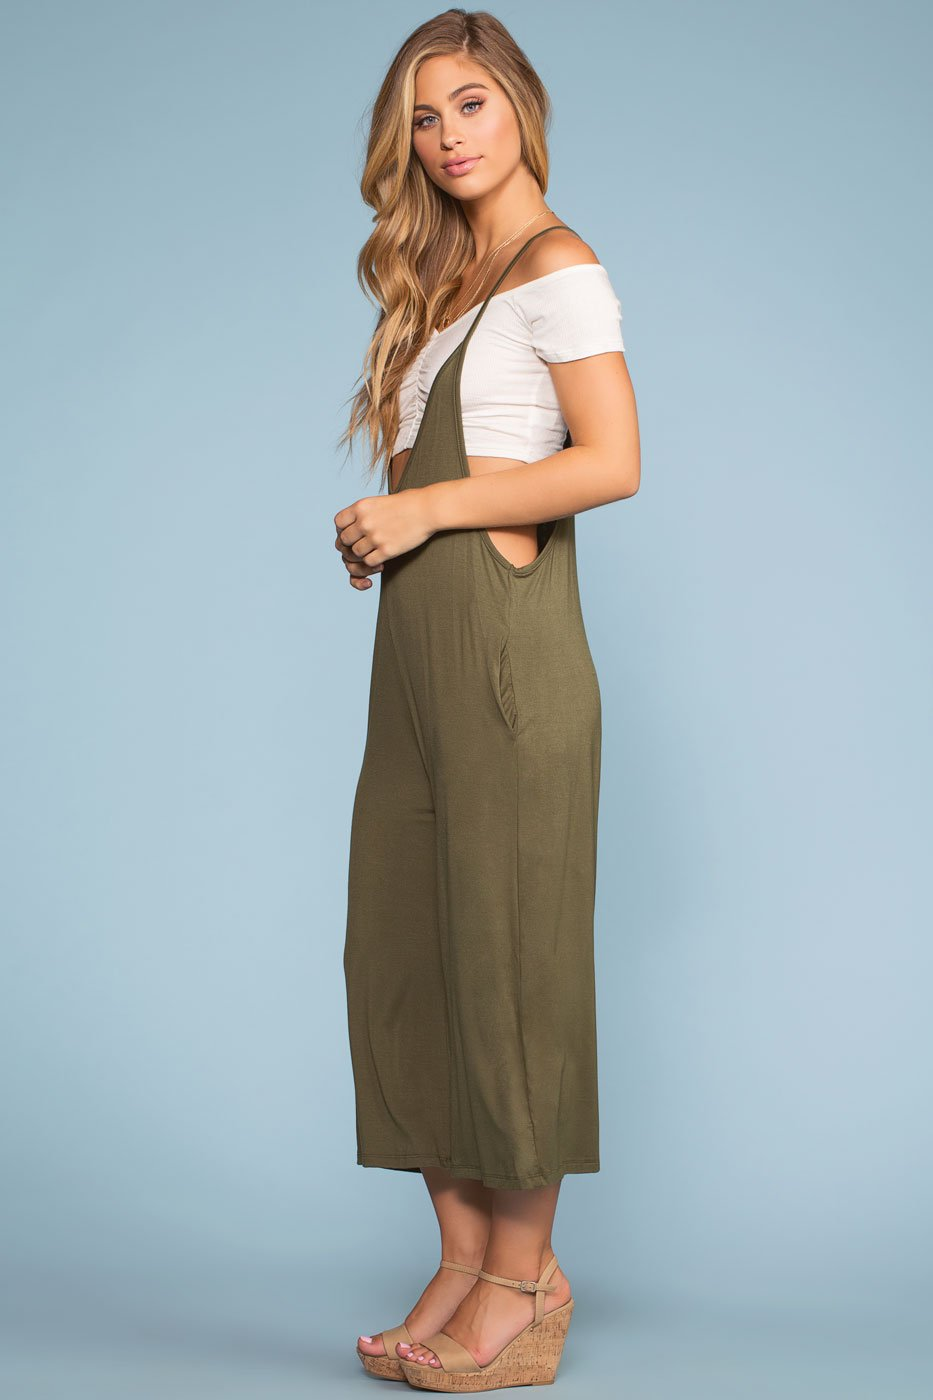 dded42ad1f1 ... Rompers - Day Driftin  Romper - Olive ...